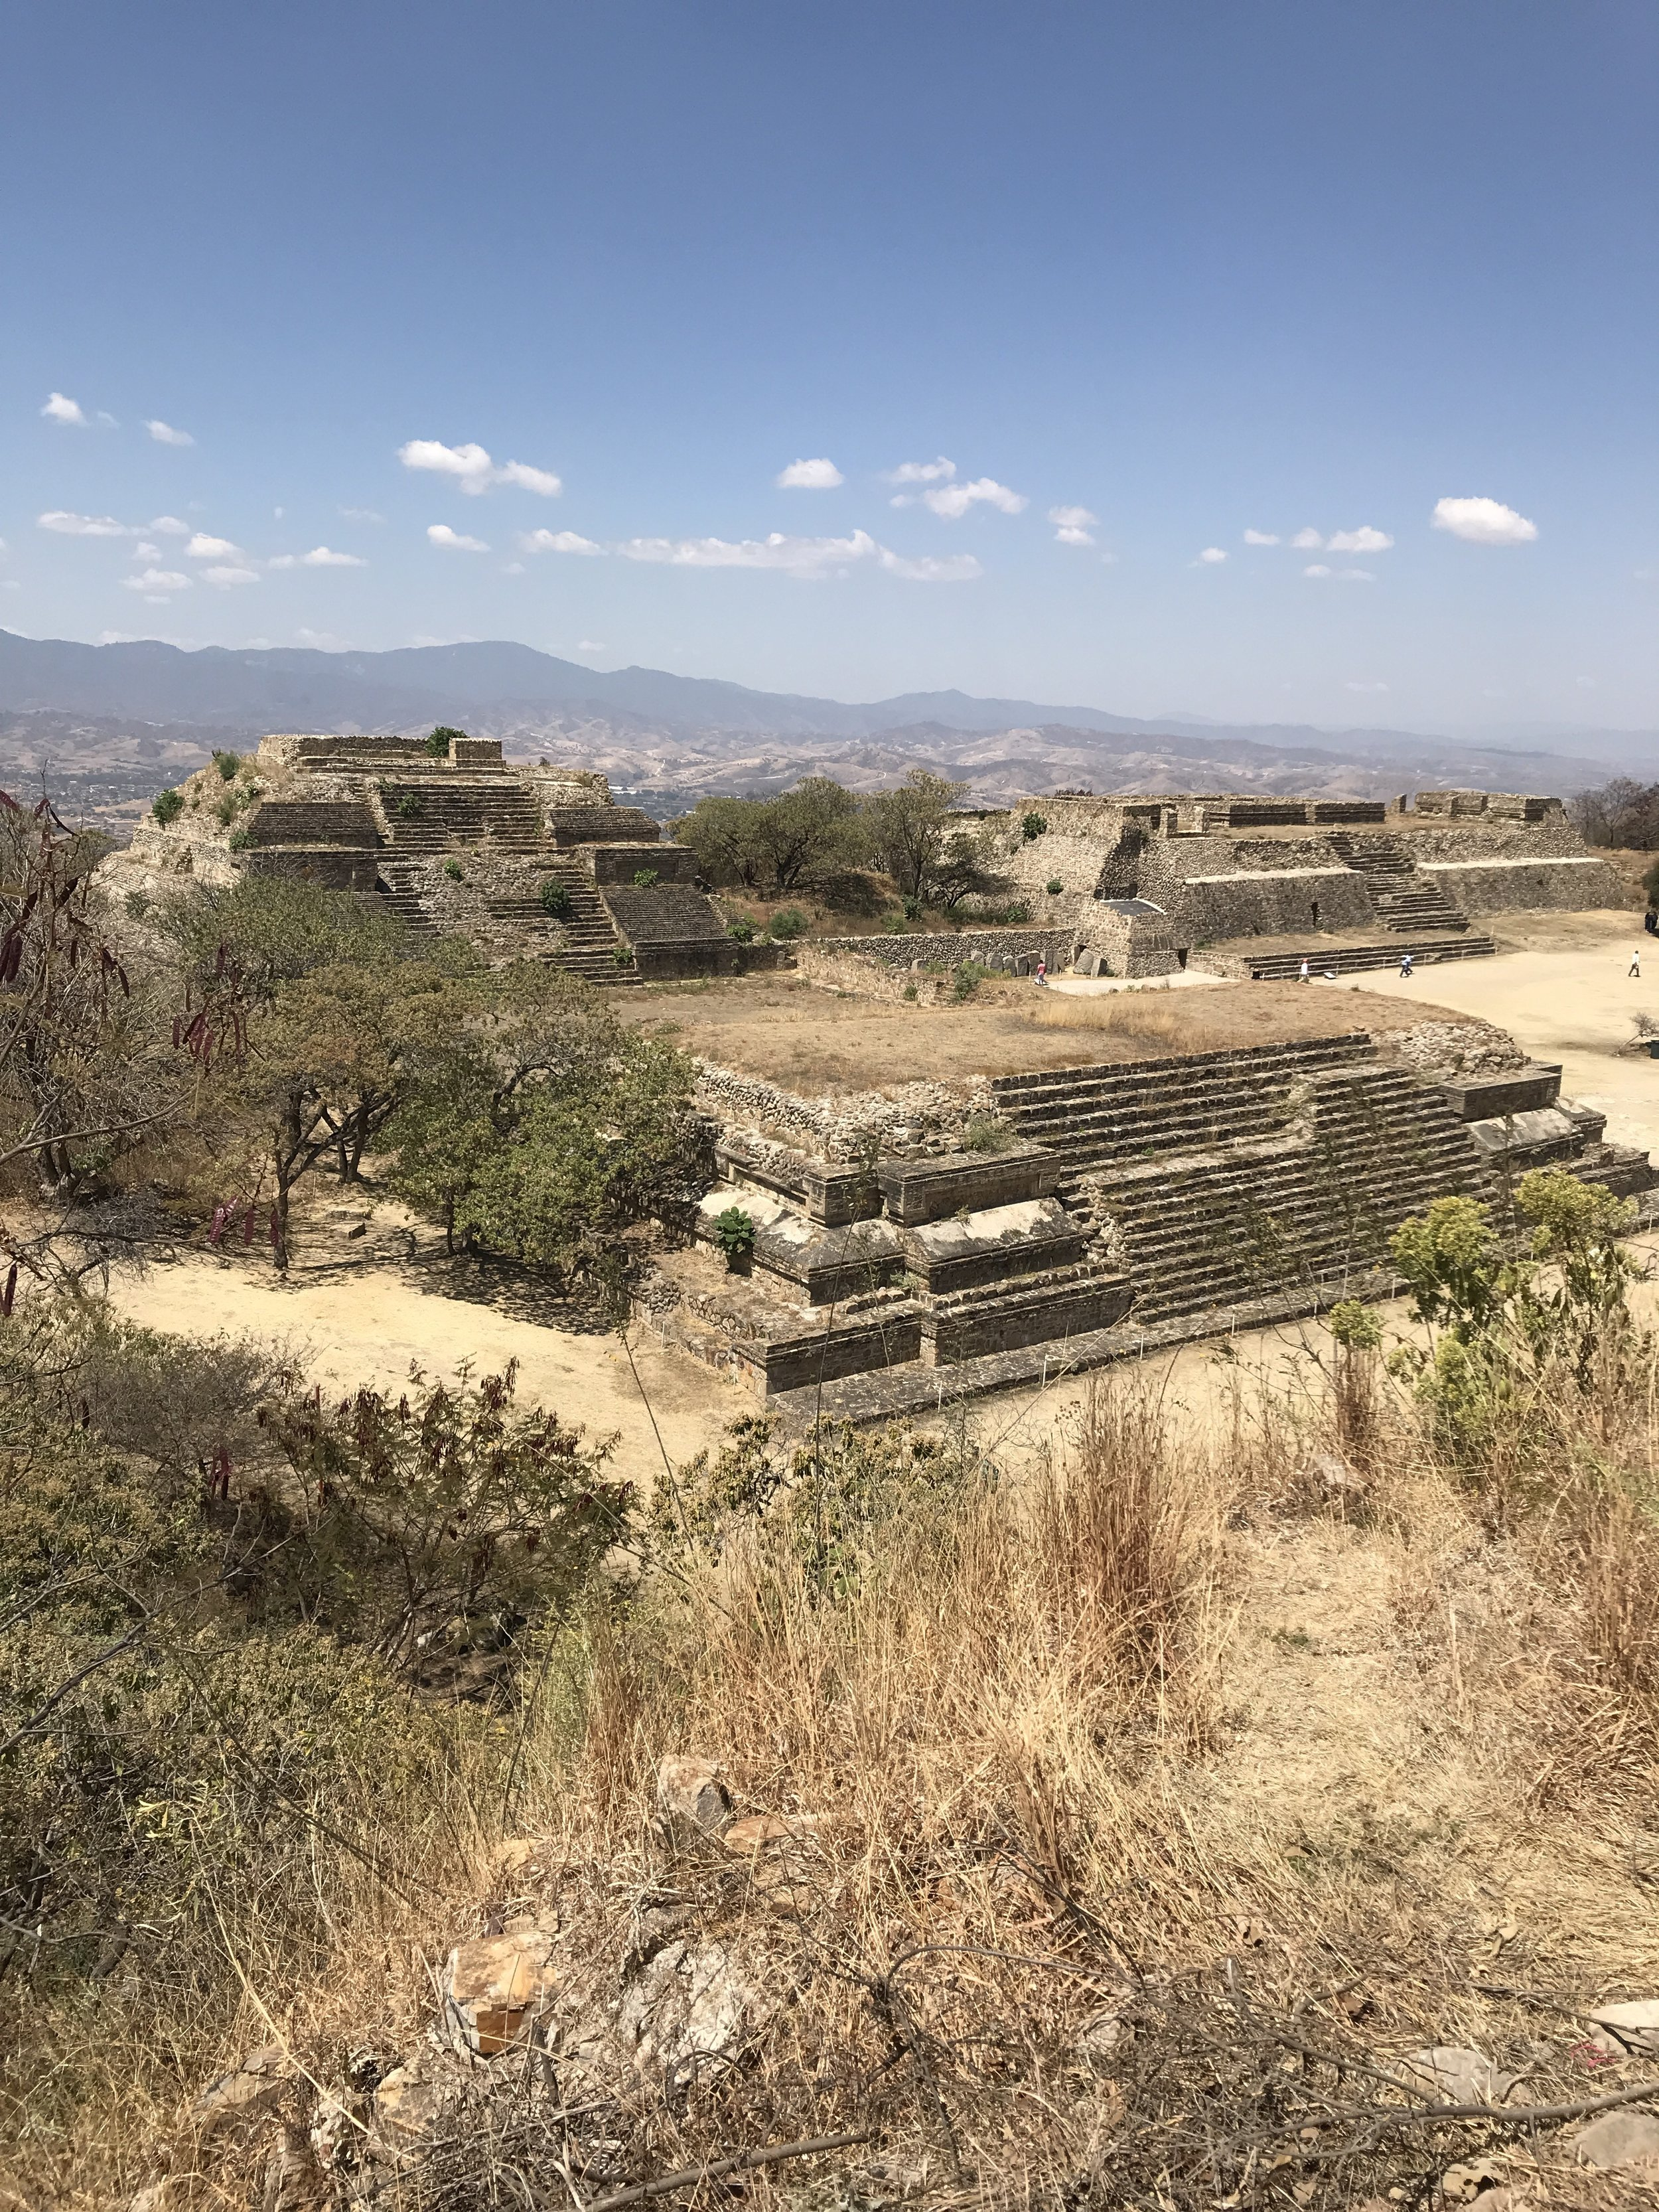 """Among other criteria that make Monte Albán     a World Heritage property  , UNESCO says, """"Monte Albán is an outstanding example of a pre-Columbian ceremonial centre in the middle zone of present-day Mexico, which was subjected to influences from the north — first from Teotihuacan, later the Aztecs — and from the south, the Maya. With its ball game court, magnificent temples, tombs and bas-reliefs with hieroglyphic inscriptions, Monte Albán bears unique testimony to the successive civilizations occupying the region during the pre-Classic and Classic periods."""""""